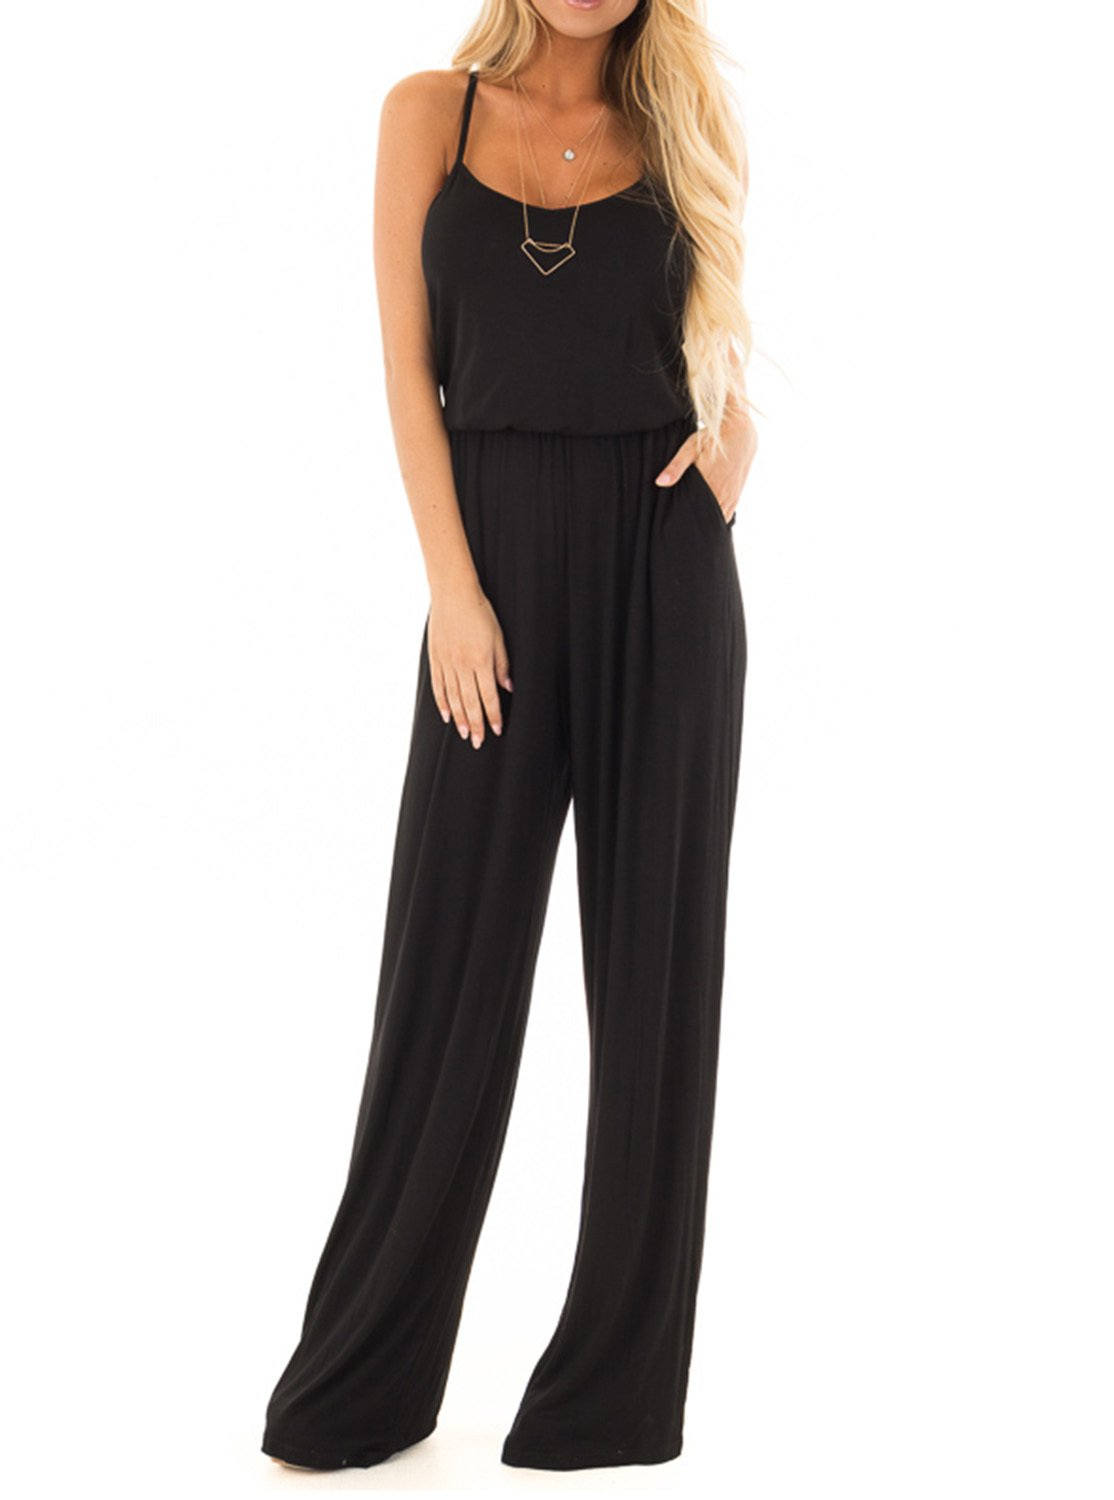 Adreamly Women Casual Loose Sleeveless Open Back Wide Leg Long Pants Romper Jumpsuits with Pockets Black Large